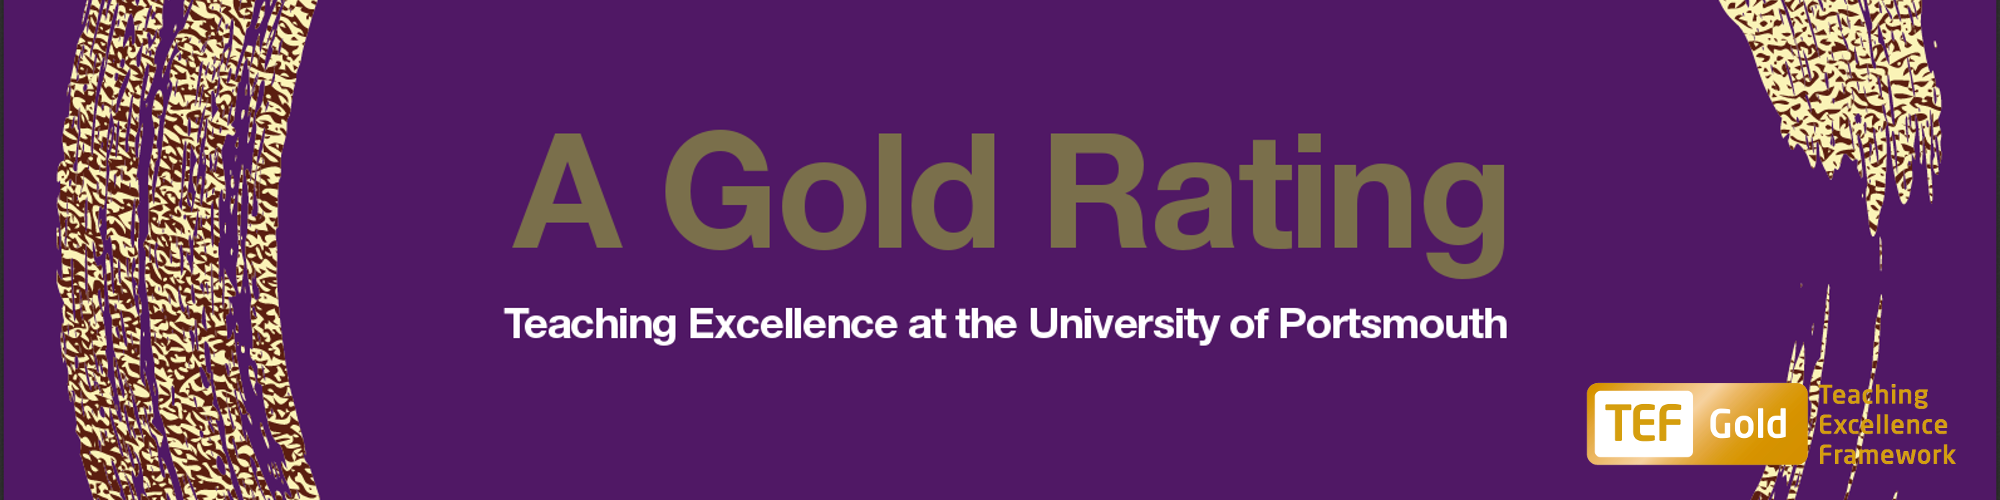 Gold rating for teaching excellence at the University of Portsmouth